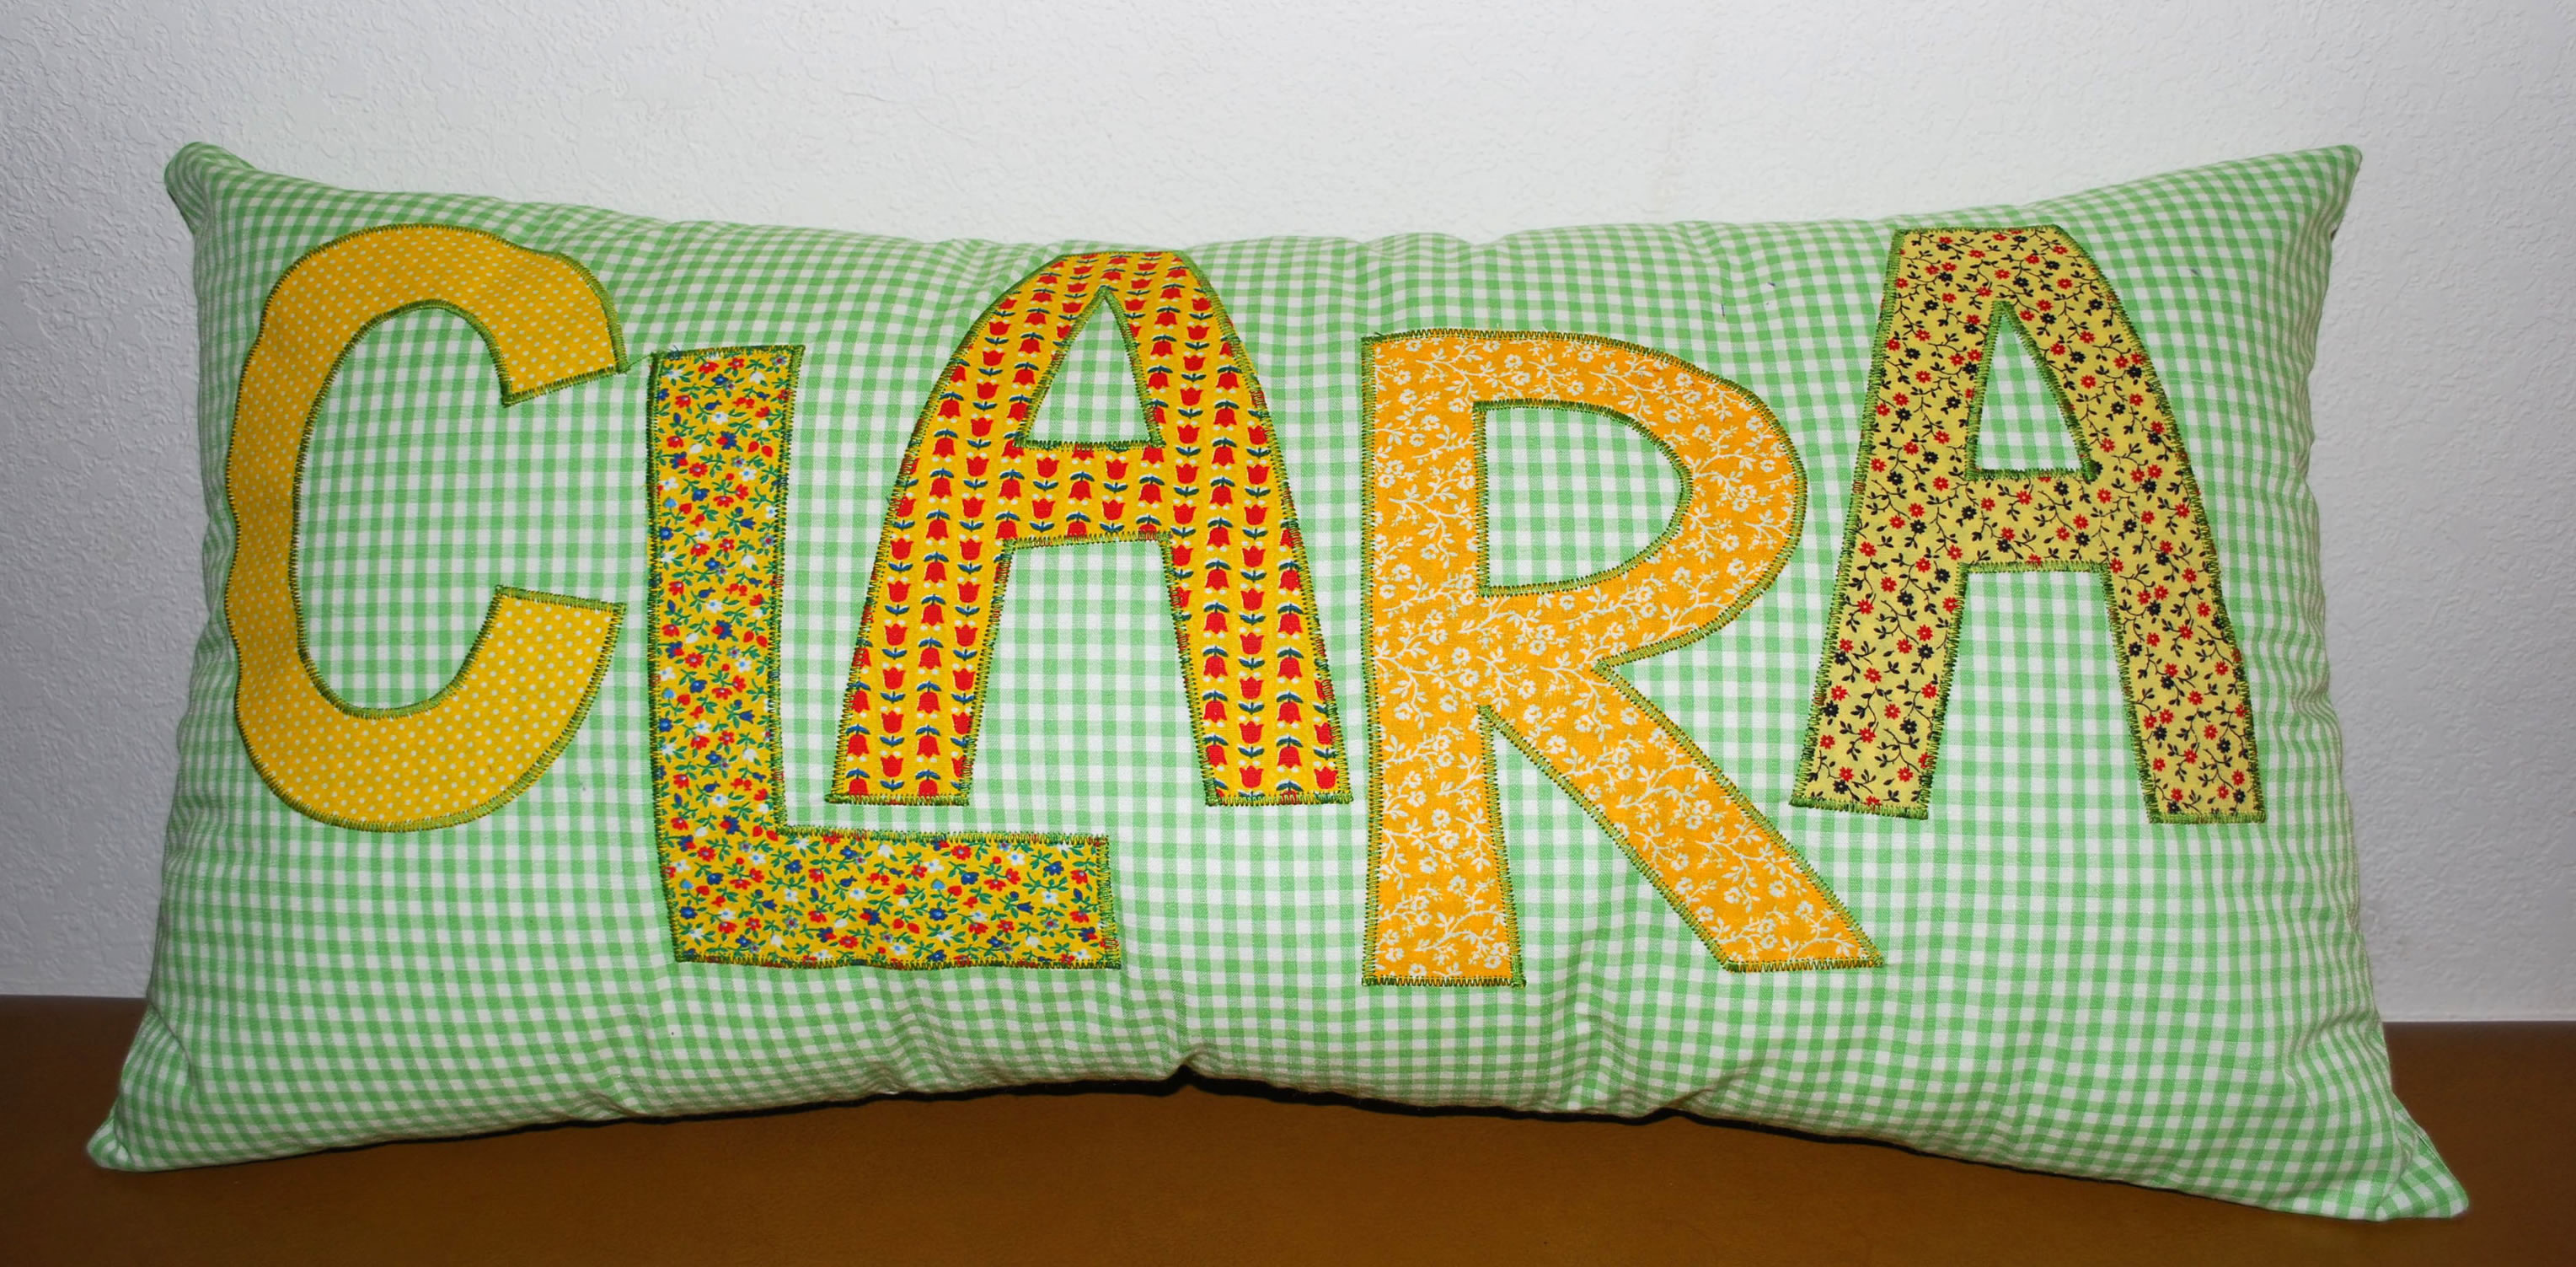 custom personalized il listing customized throw pillow pillows decorative fullxfull handmade